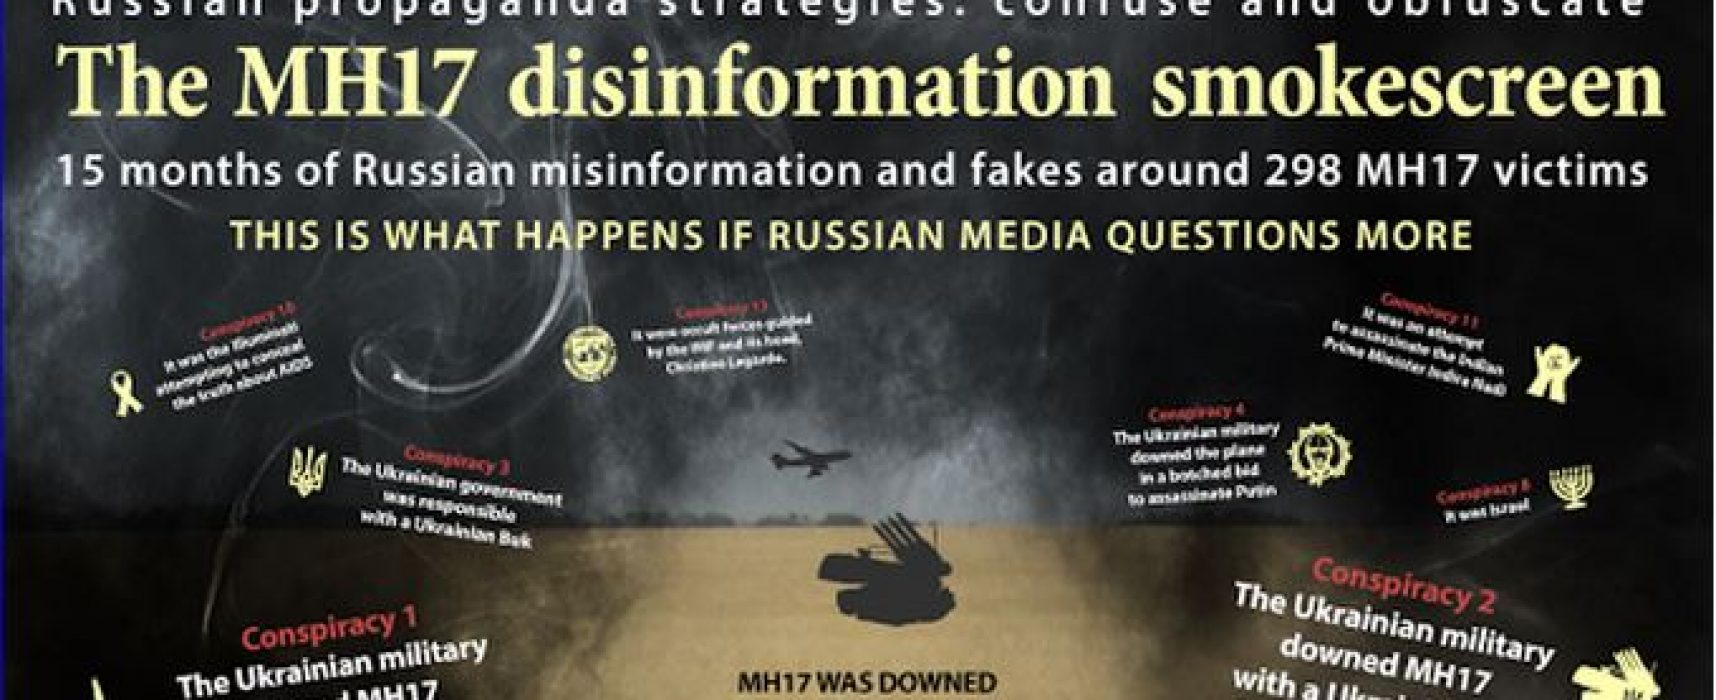 The most comprehensive guide ever to MH17 conspiracies